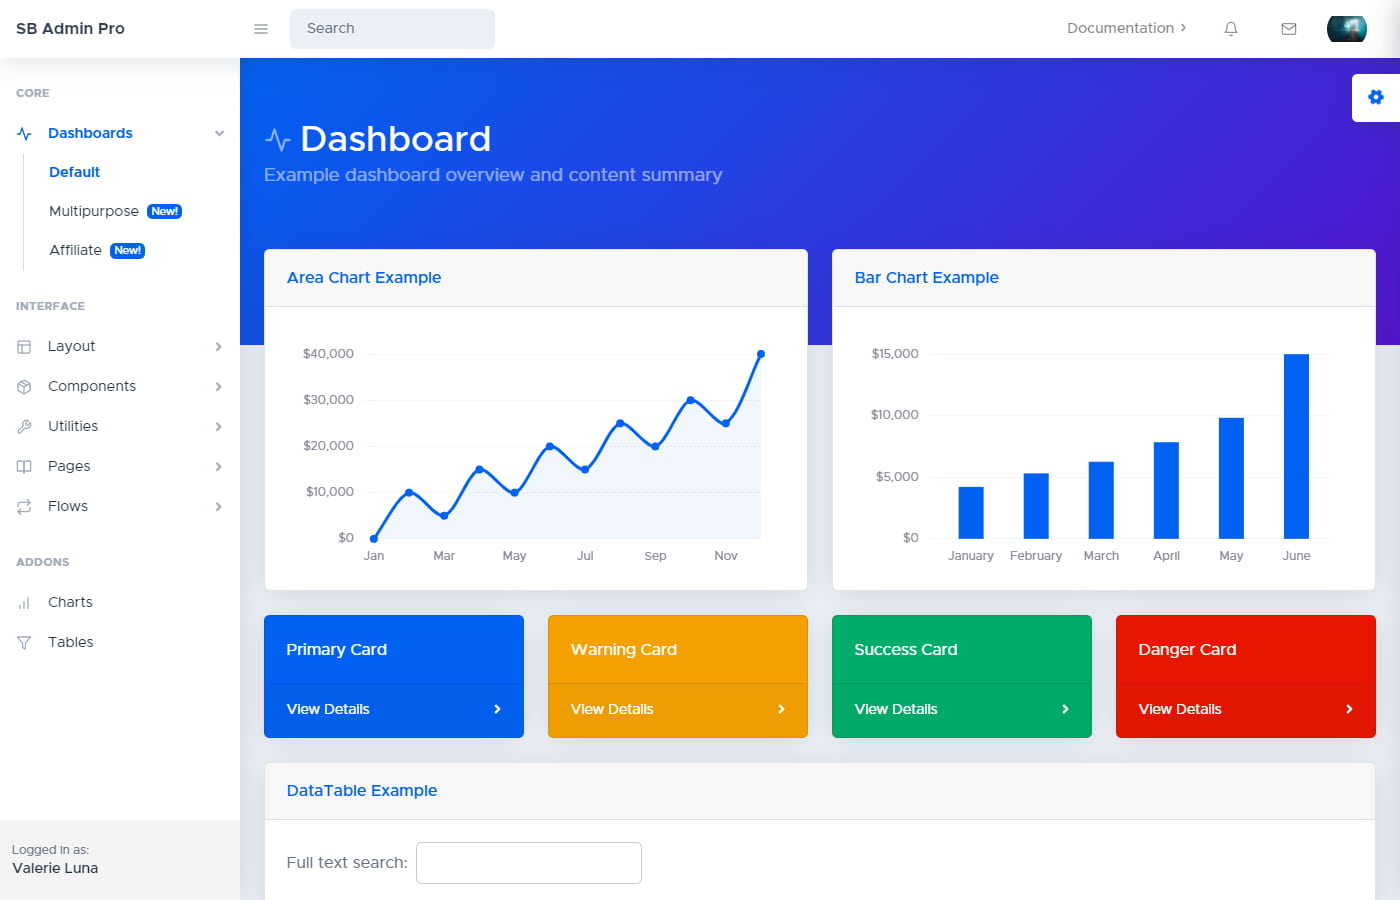 Preview of SB Admin Pro dashboard